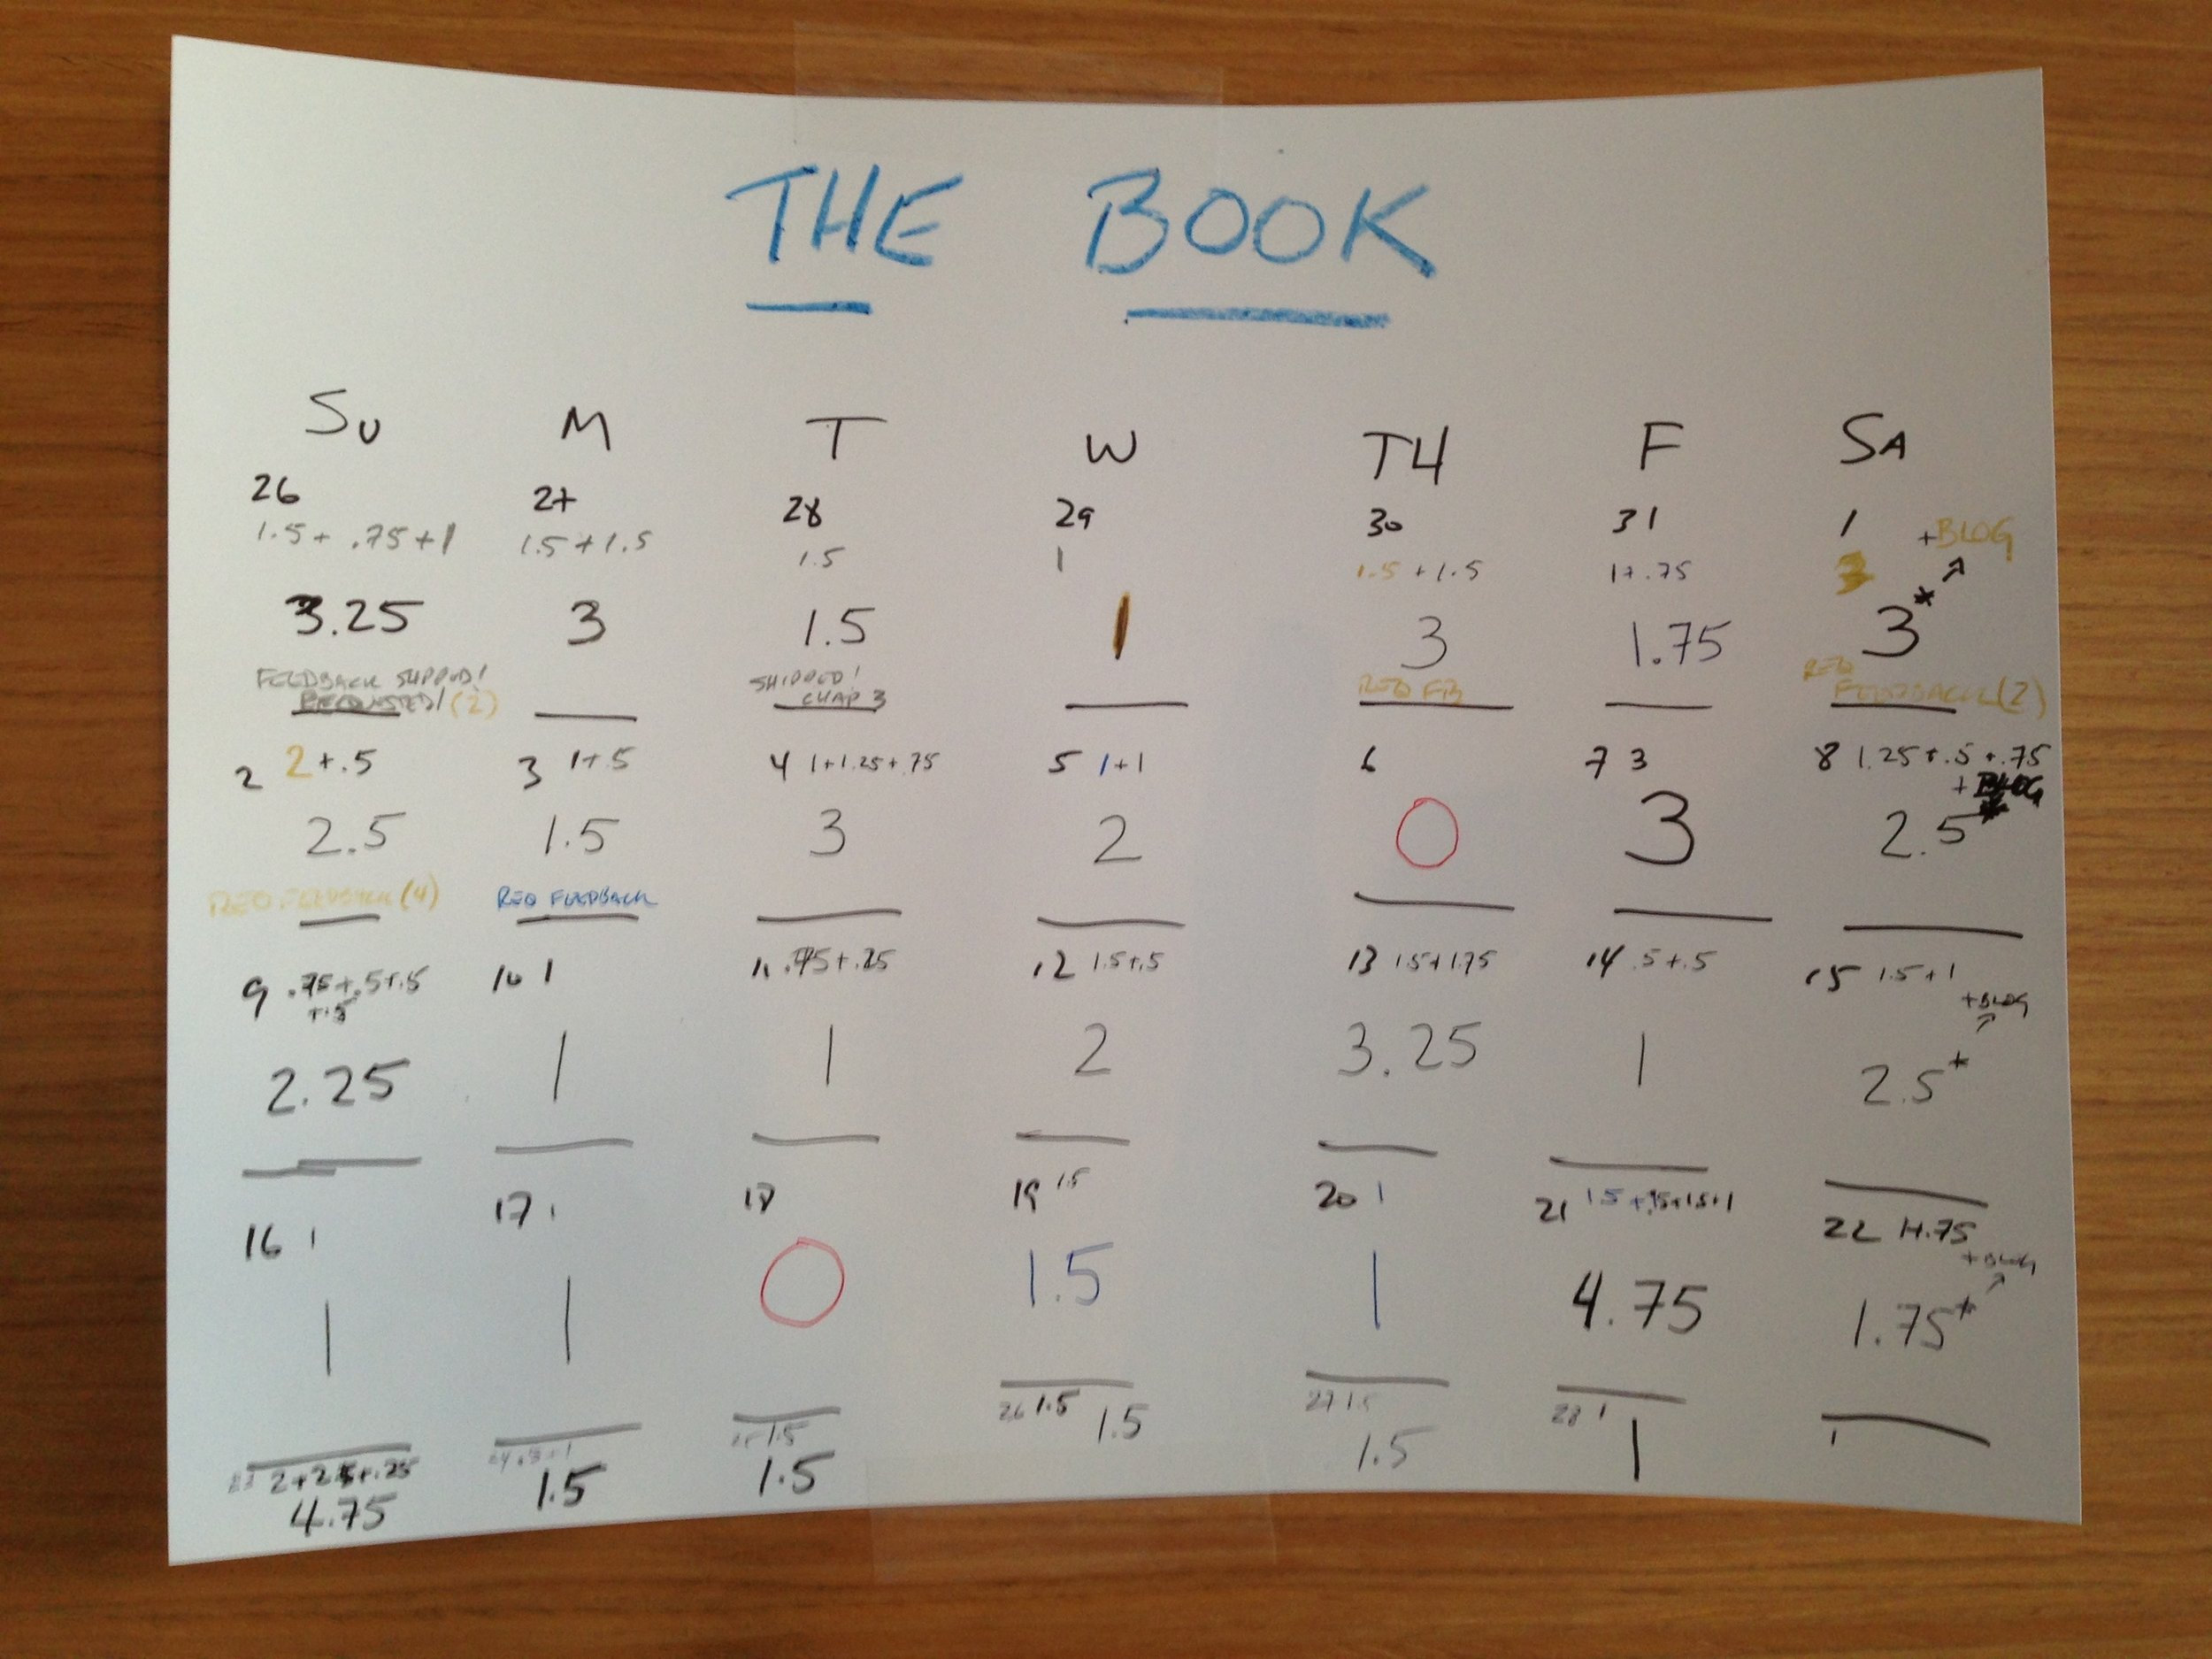 My first chart: The number of hours working on the Book in 2014